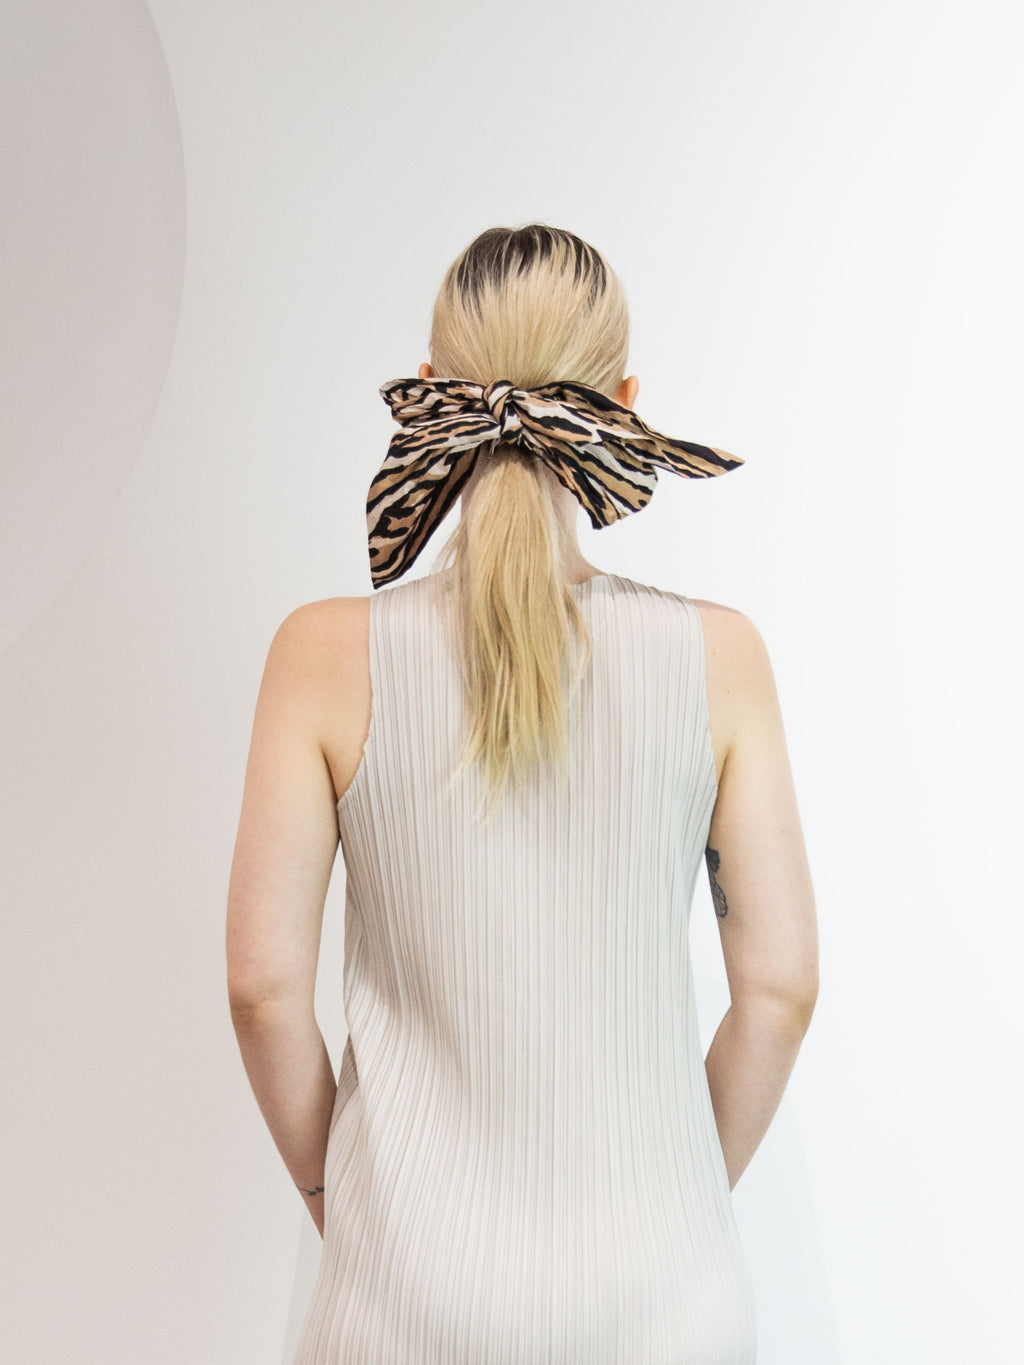 Meadow Hair Sash - Leopard